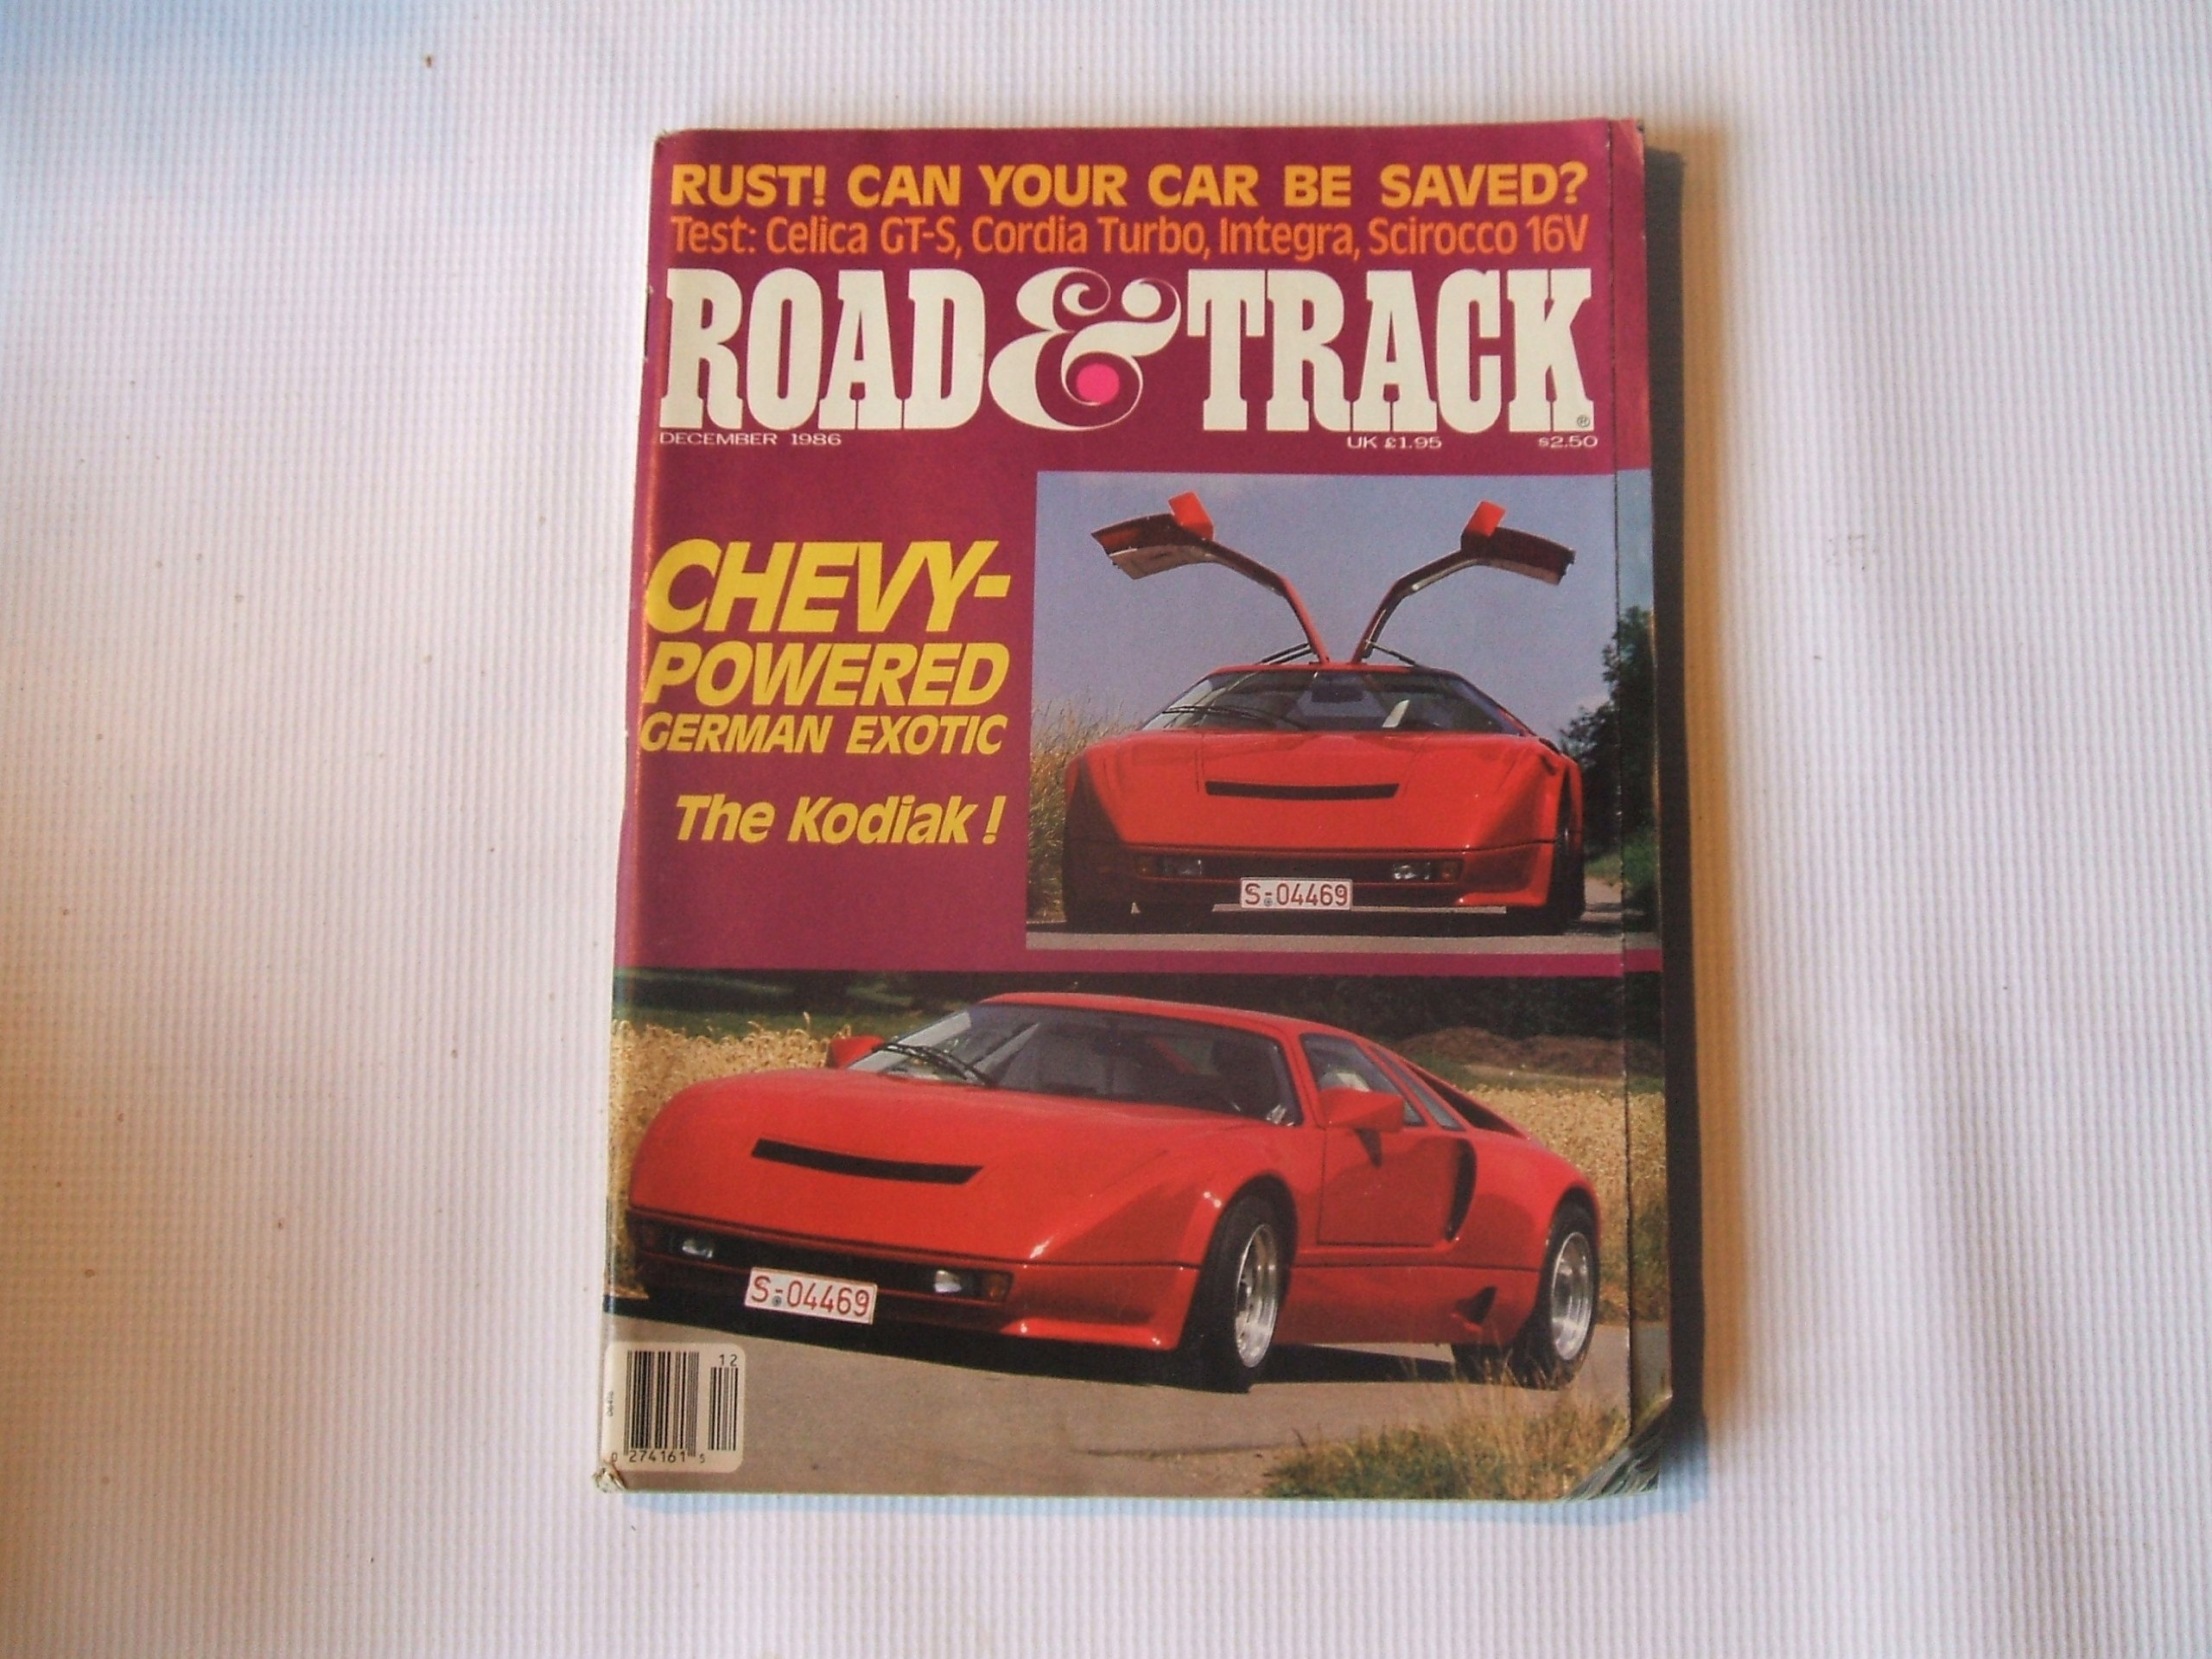 Road & Track December 1986 (CHEVY-POWERED GERMAN EXOTIC THE KOKIAK!, TEST: CELICA GT-S, CORDIA TURBO, INTEGRA, SCIROCCO 16V) Paperback – 1986